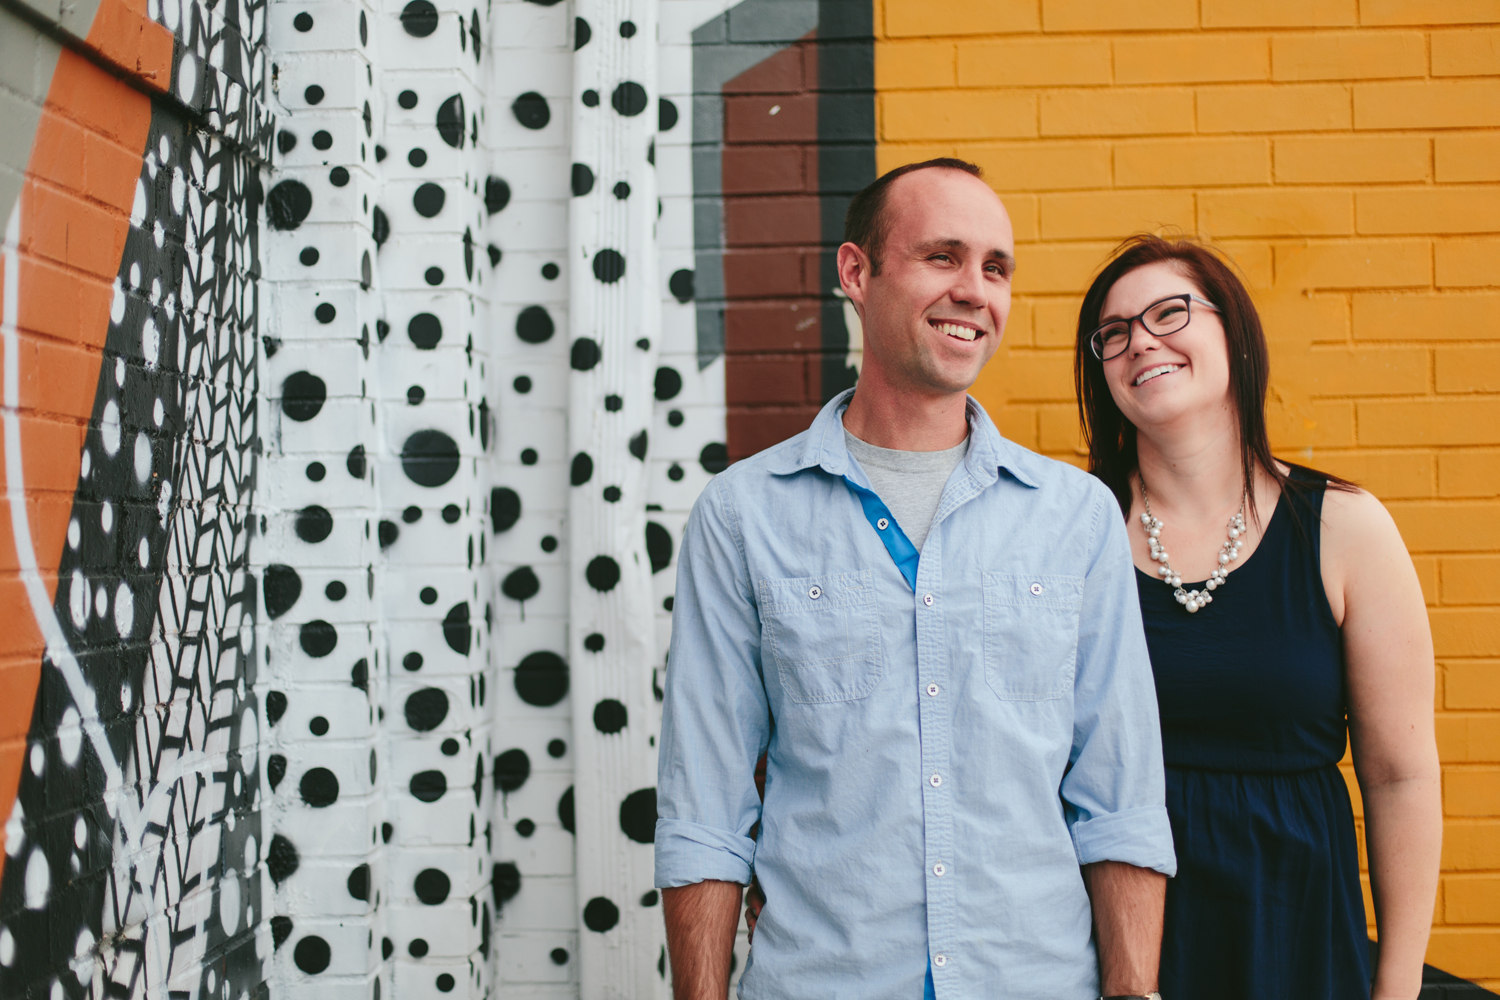 Jillian VanZytveld Photography Denver Colorado Engagement Portraits 23.jpg